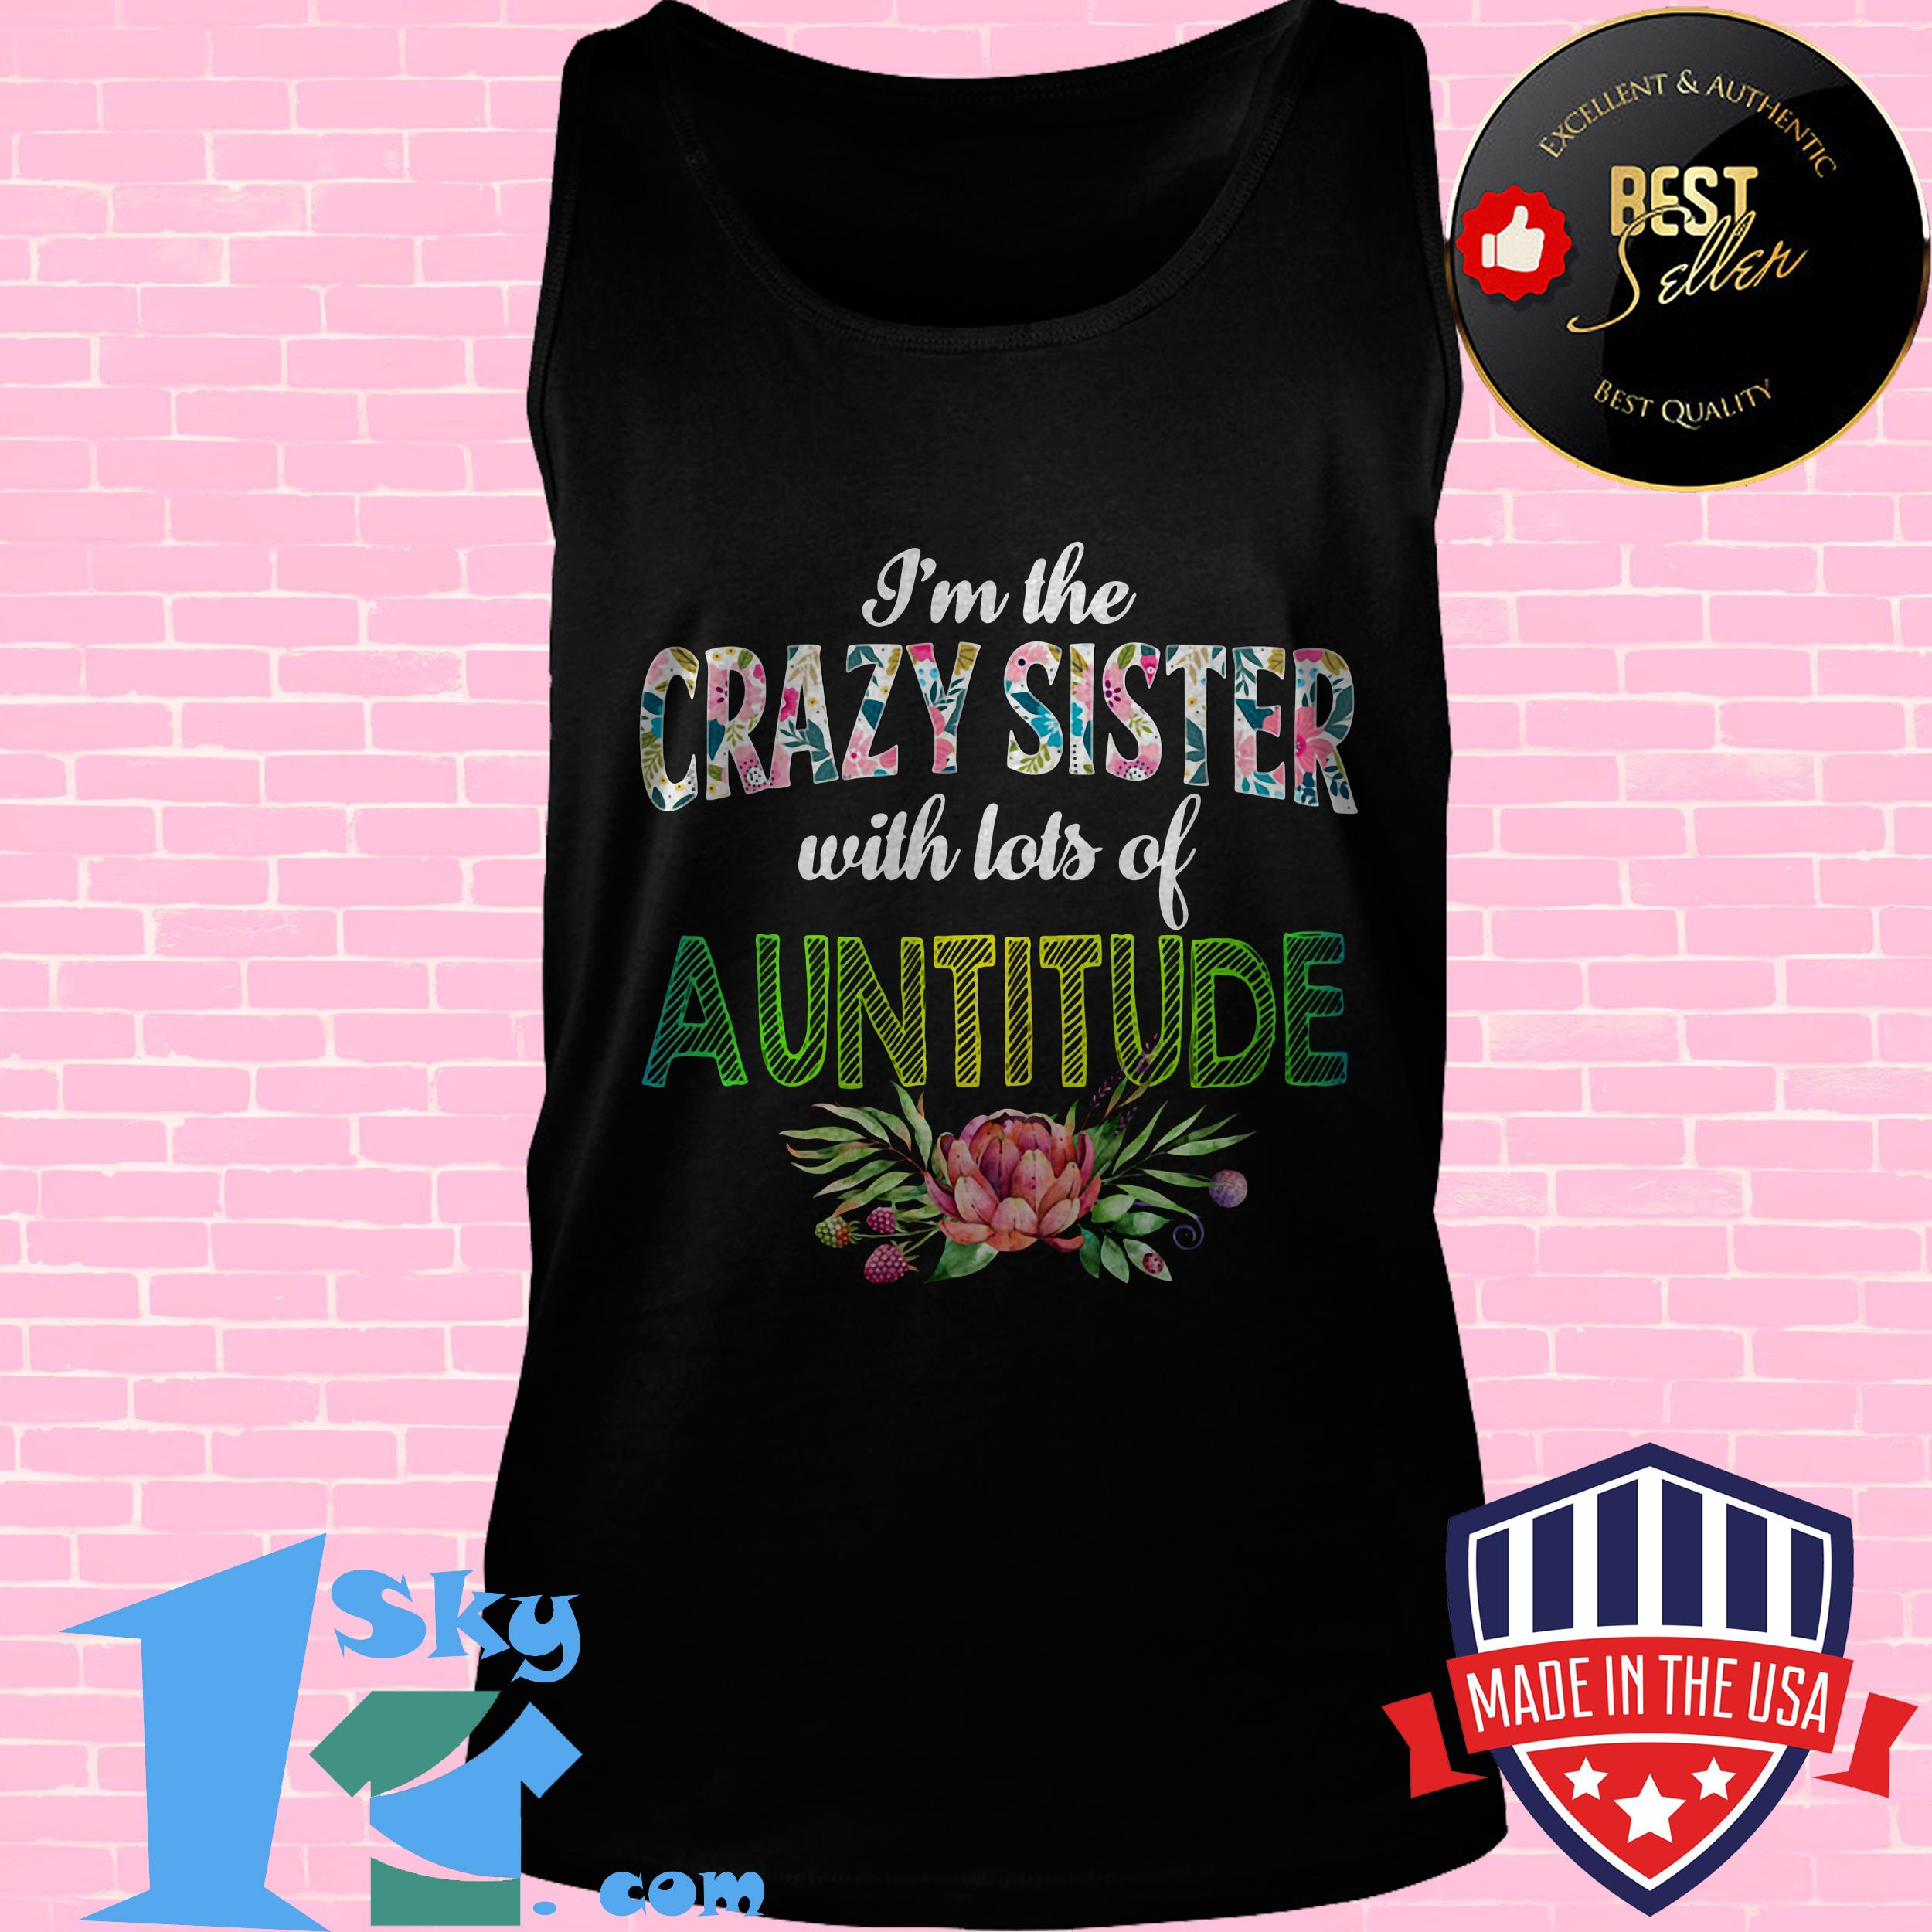 im the crazy sister with lots of auntitude floral tank top - I'm The Crazy Sister with Lots of Auntitude Floral Shirt